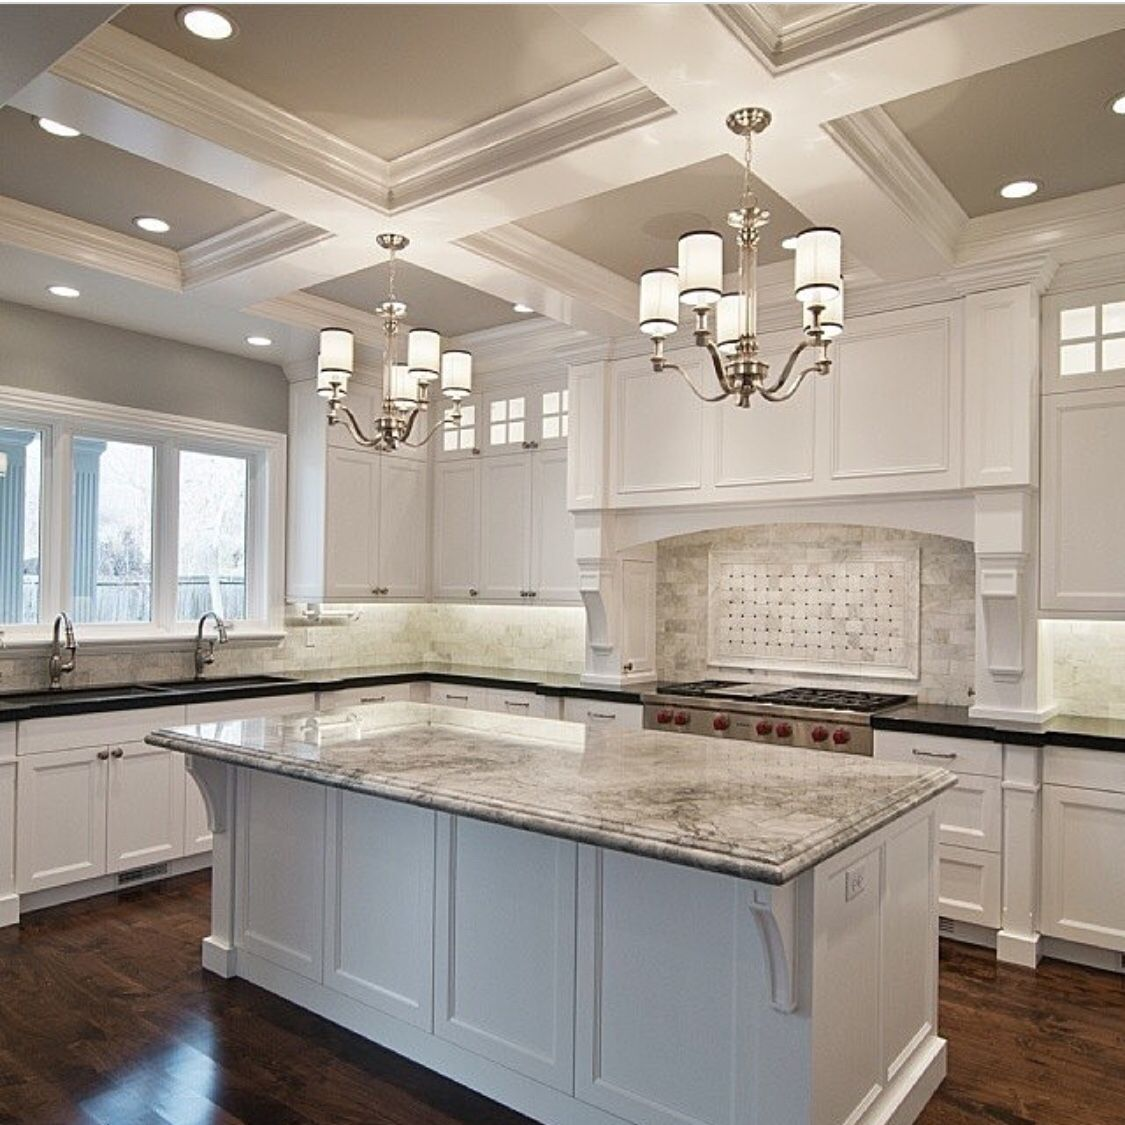 white kitchen dark floors large island island design kitchen design home kitchens on kitchen remodel dark floors id=74666